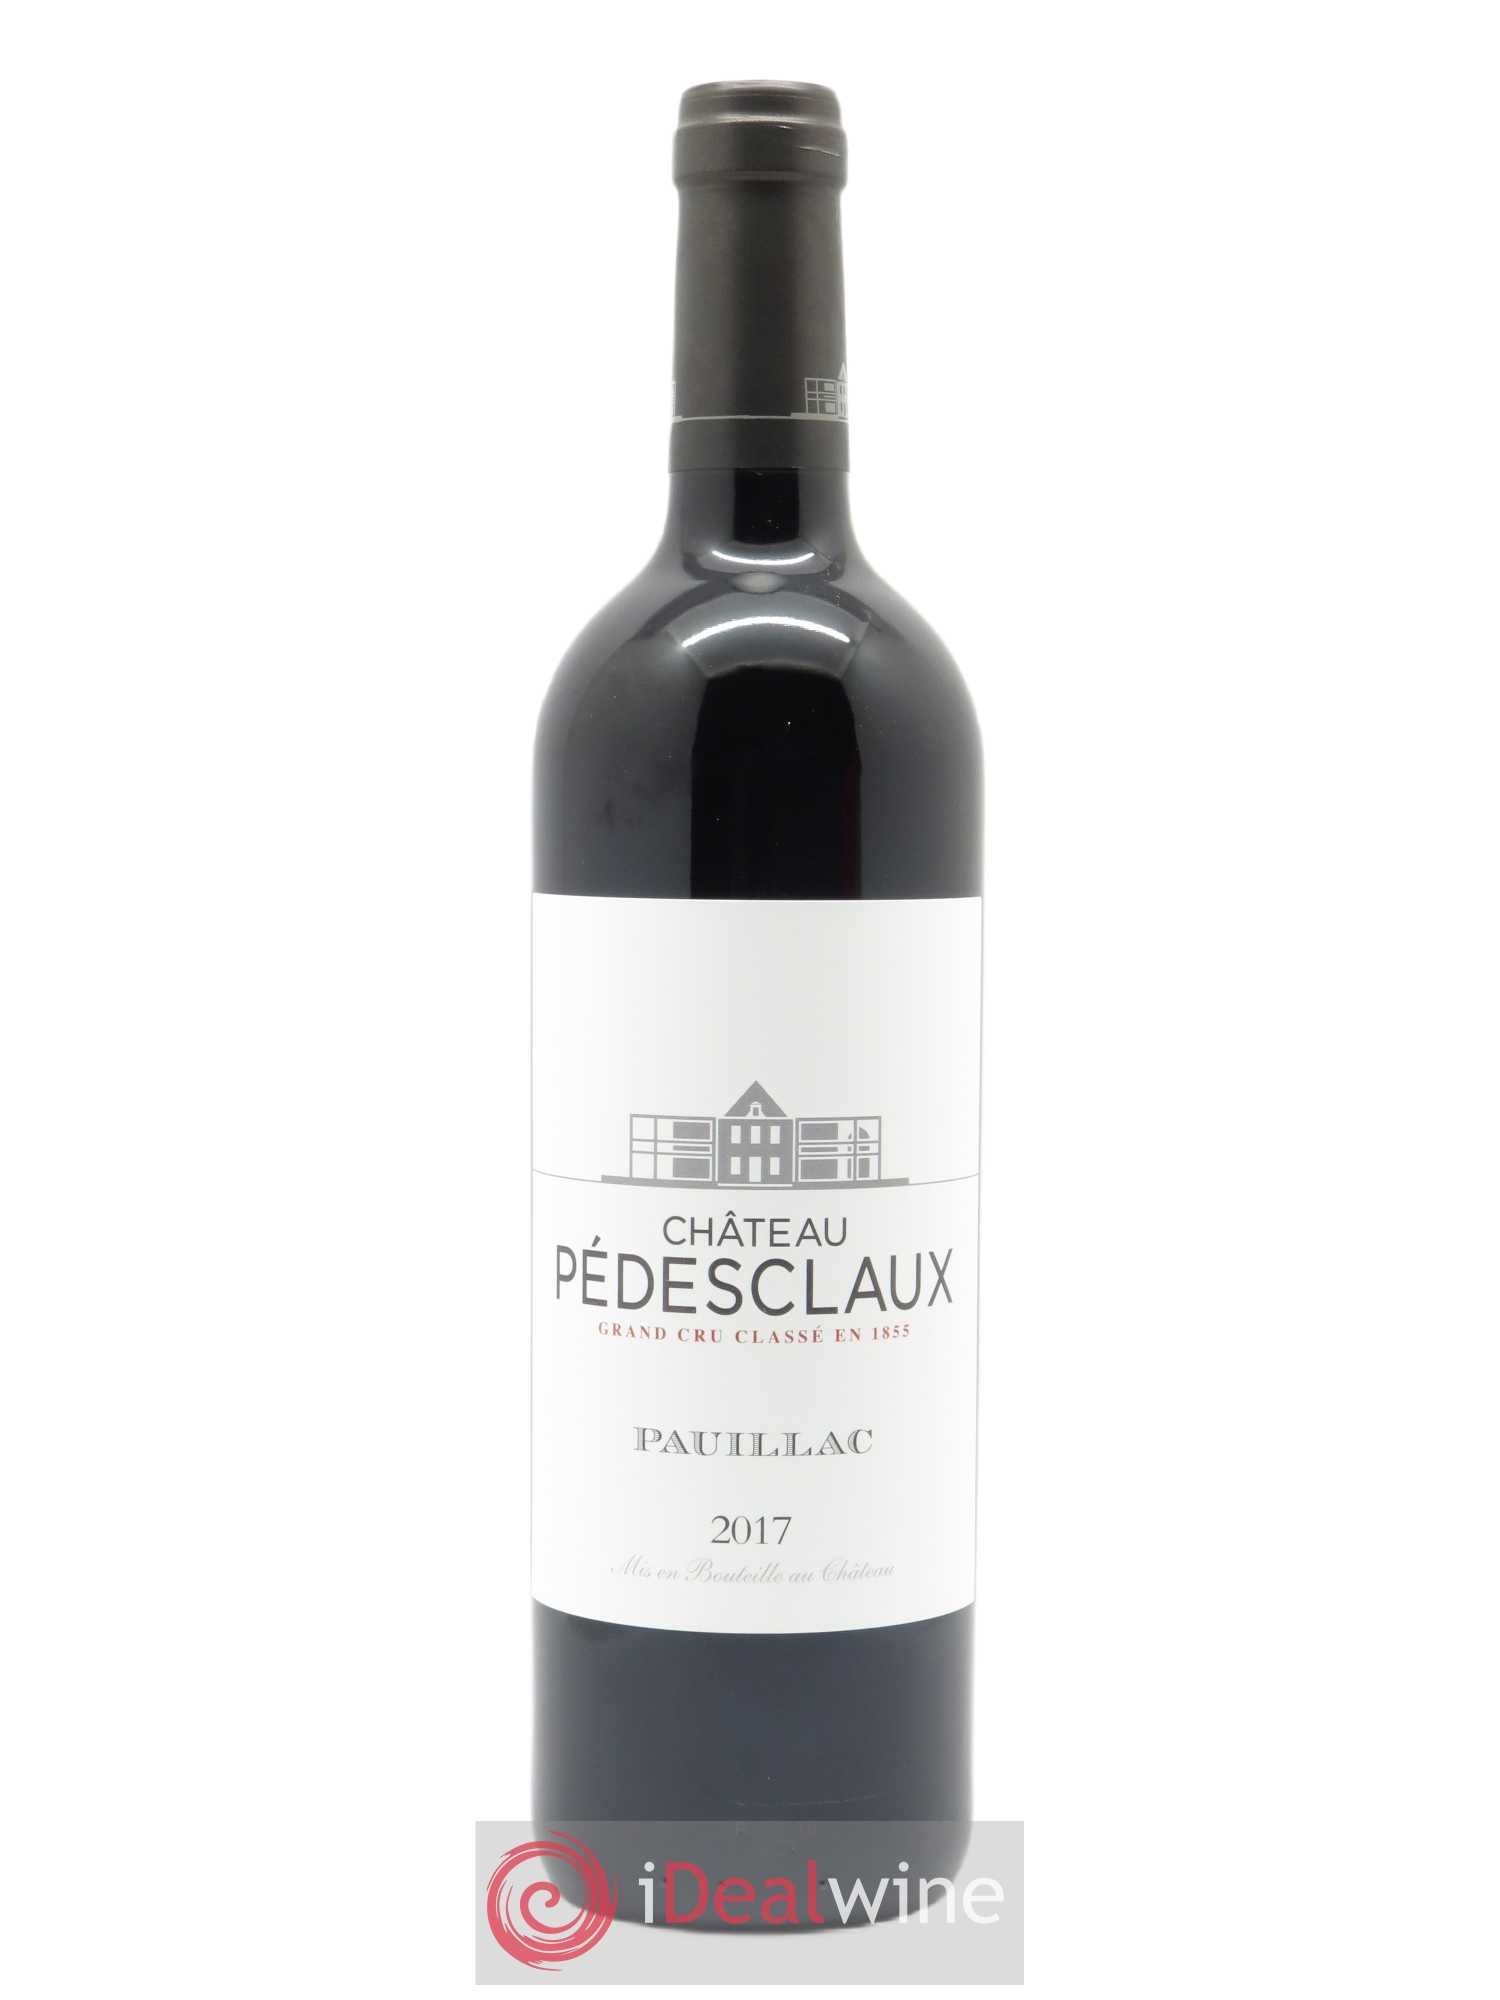 Château Pedesclaux 5ème Grand Cru Classé (OWC IF 12 btl) 2017 - Lot of 1 Bottle